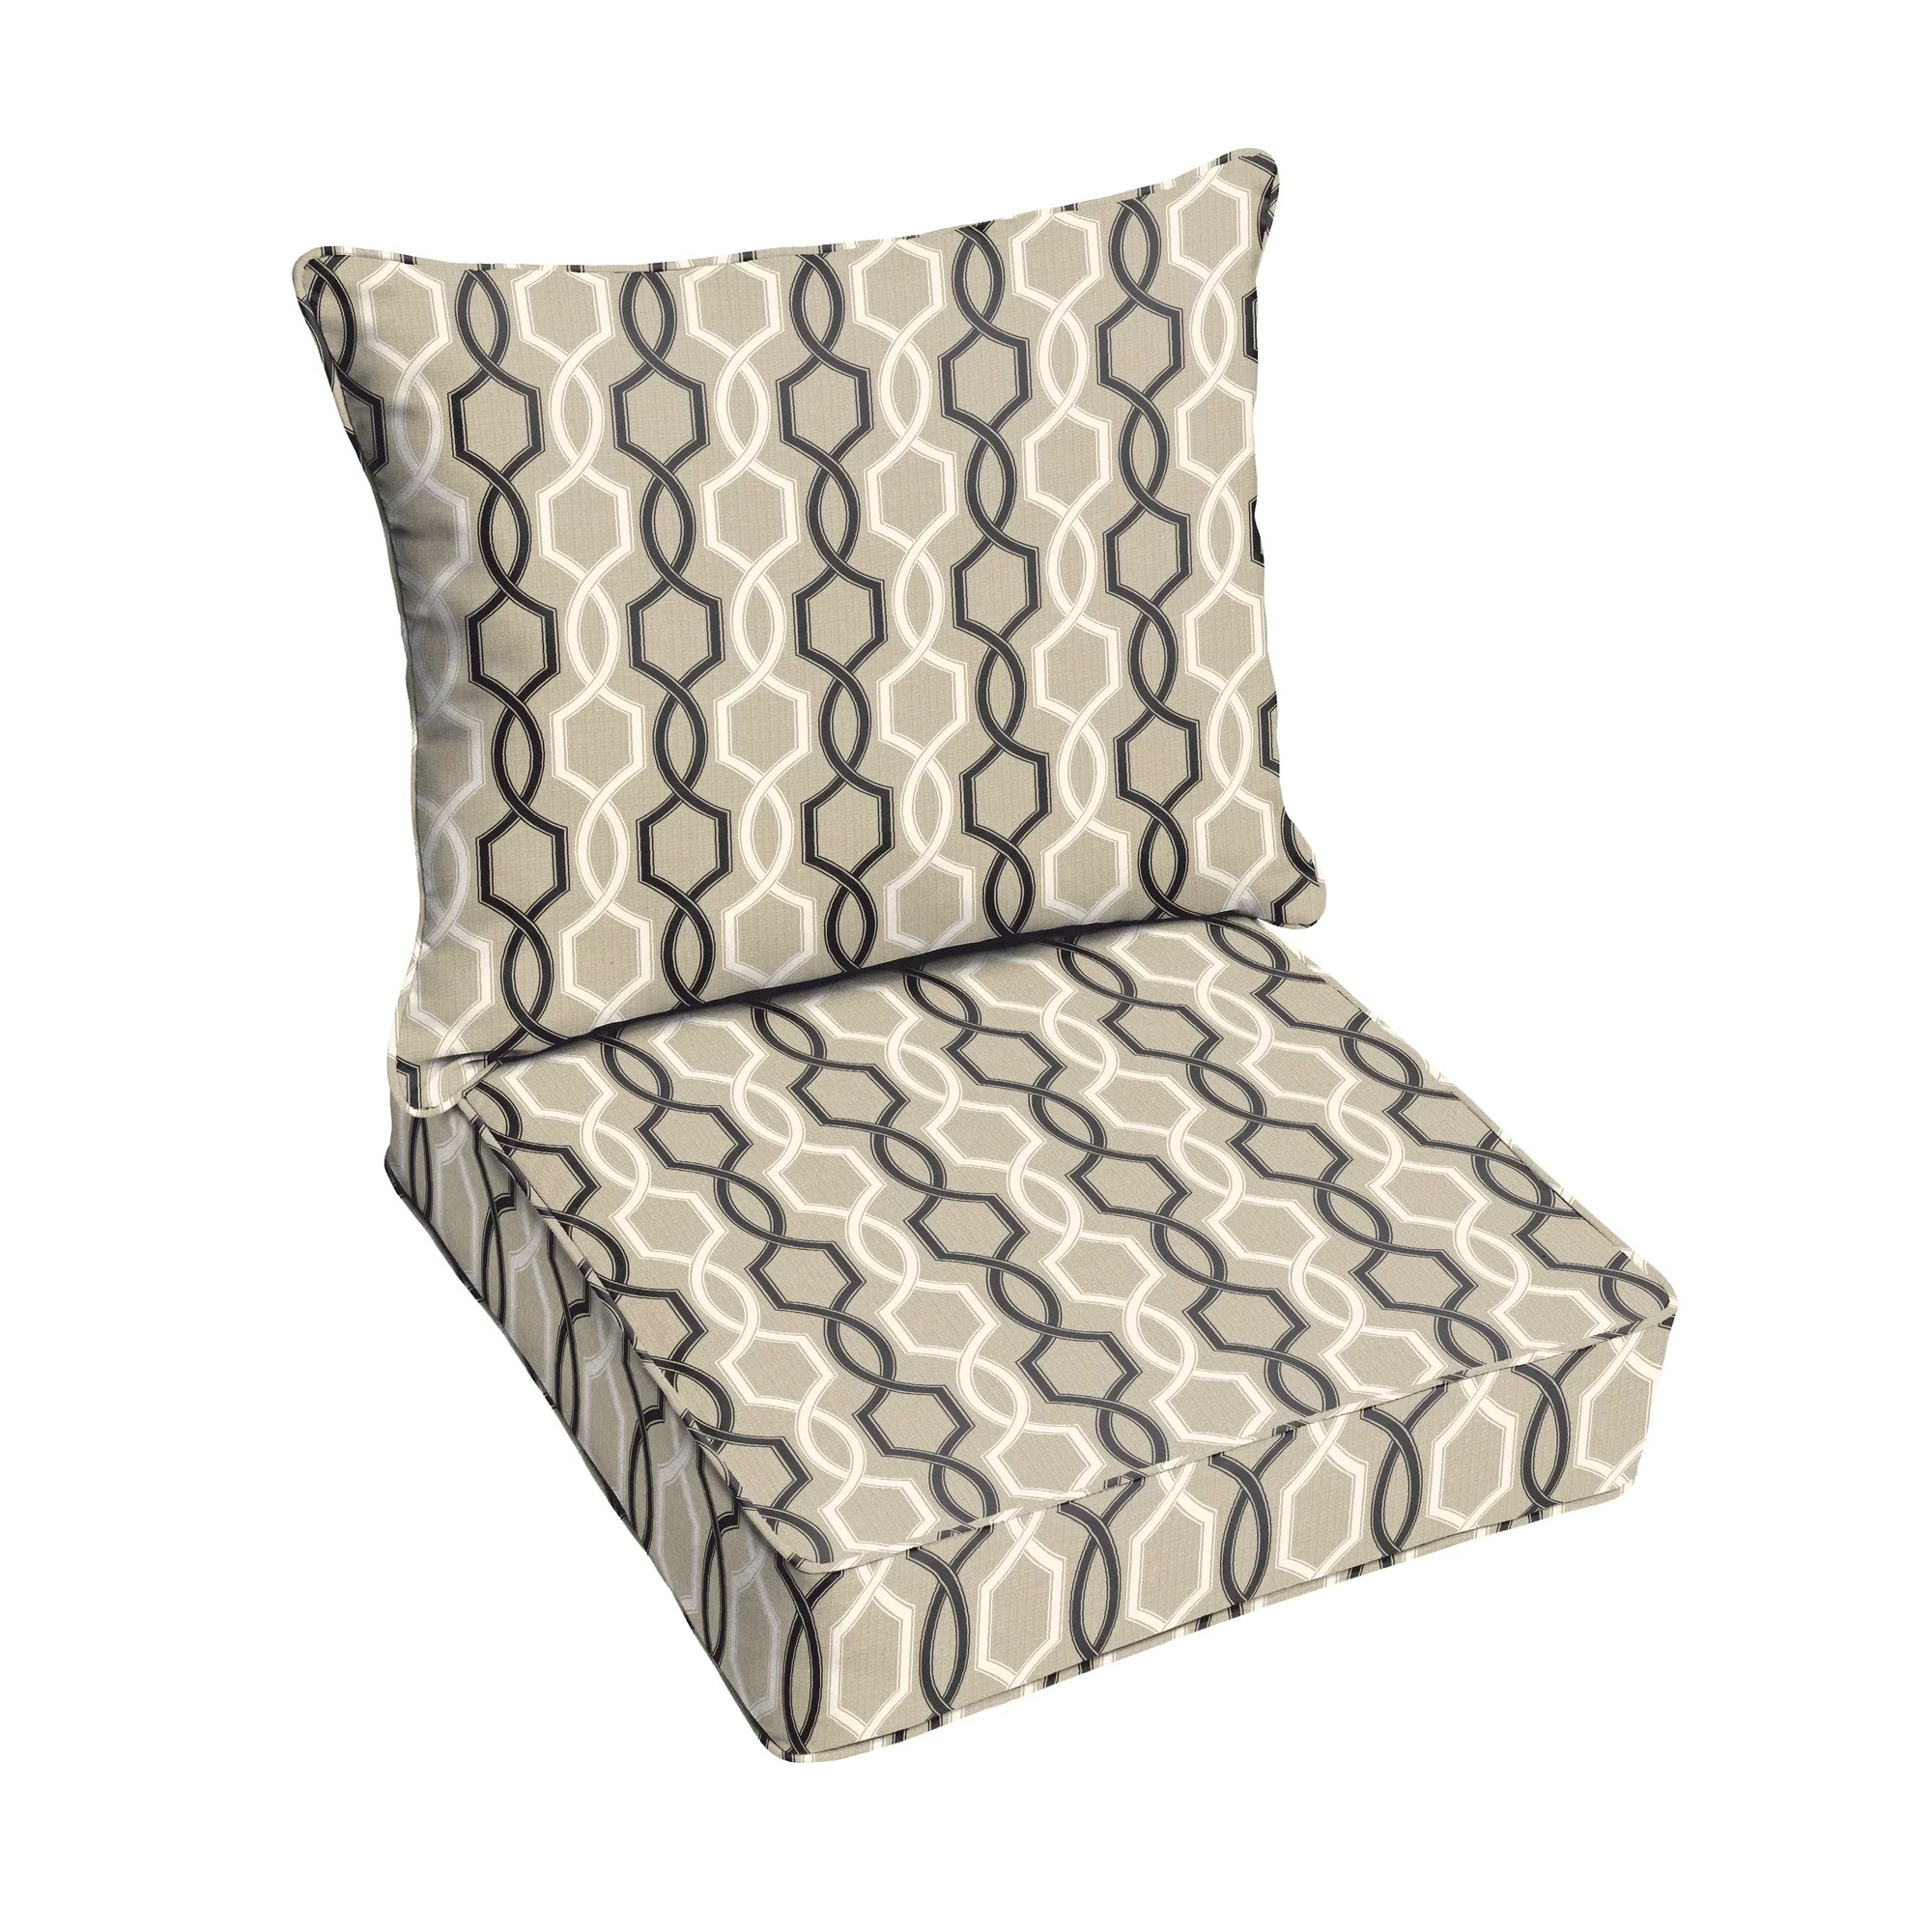 one piece patio chair cushions dining covers for sale nz darby home co bank 2 outdoor sunbrella